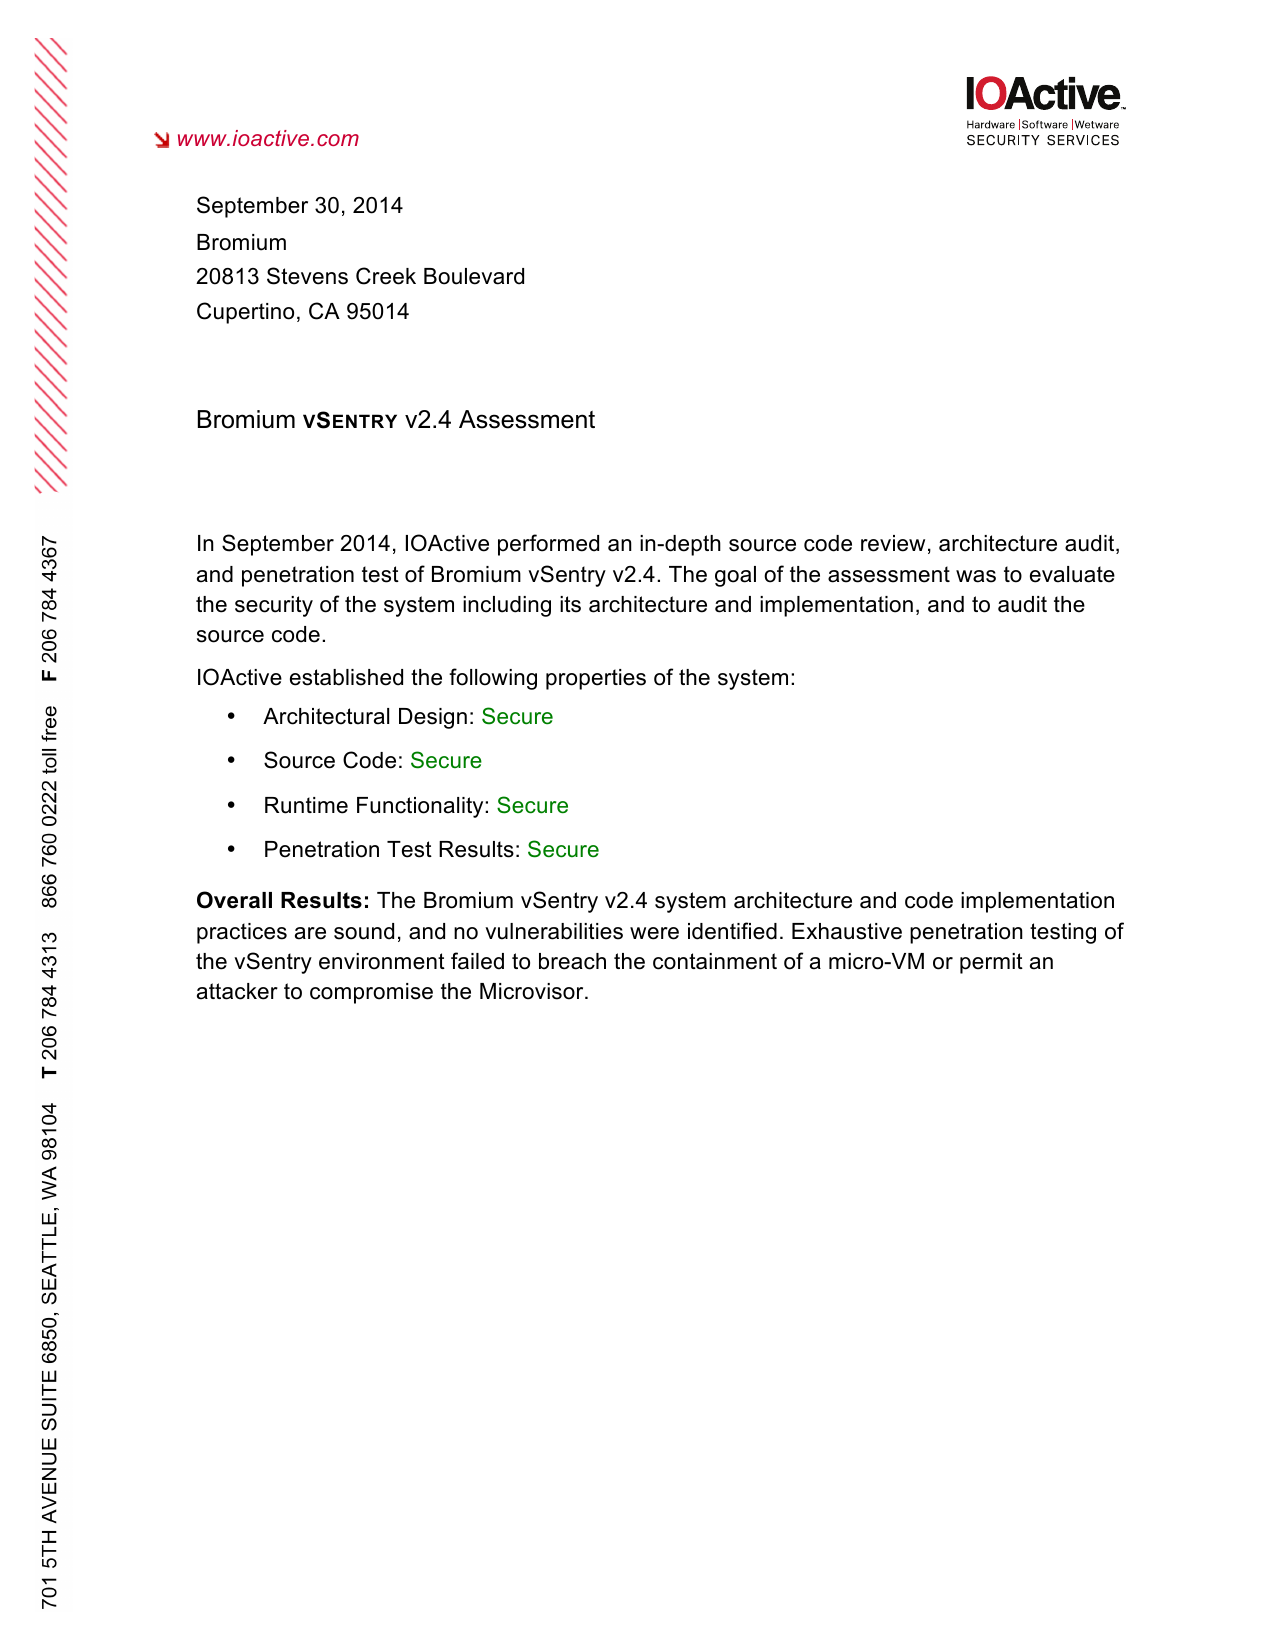 First page of the 'ioactive-bromium-test-report-final' PDF